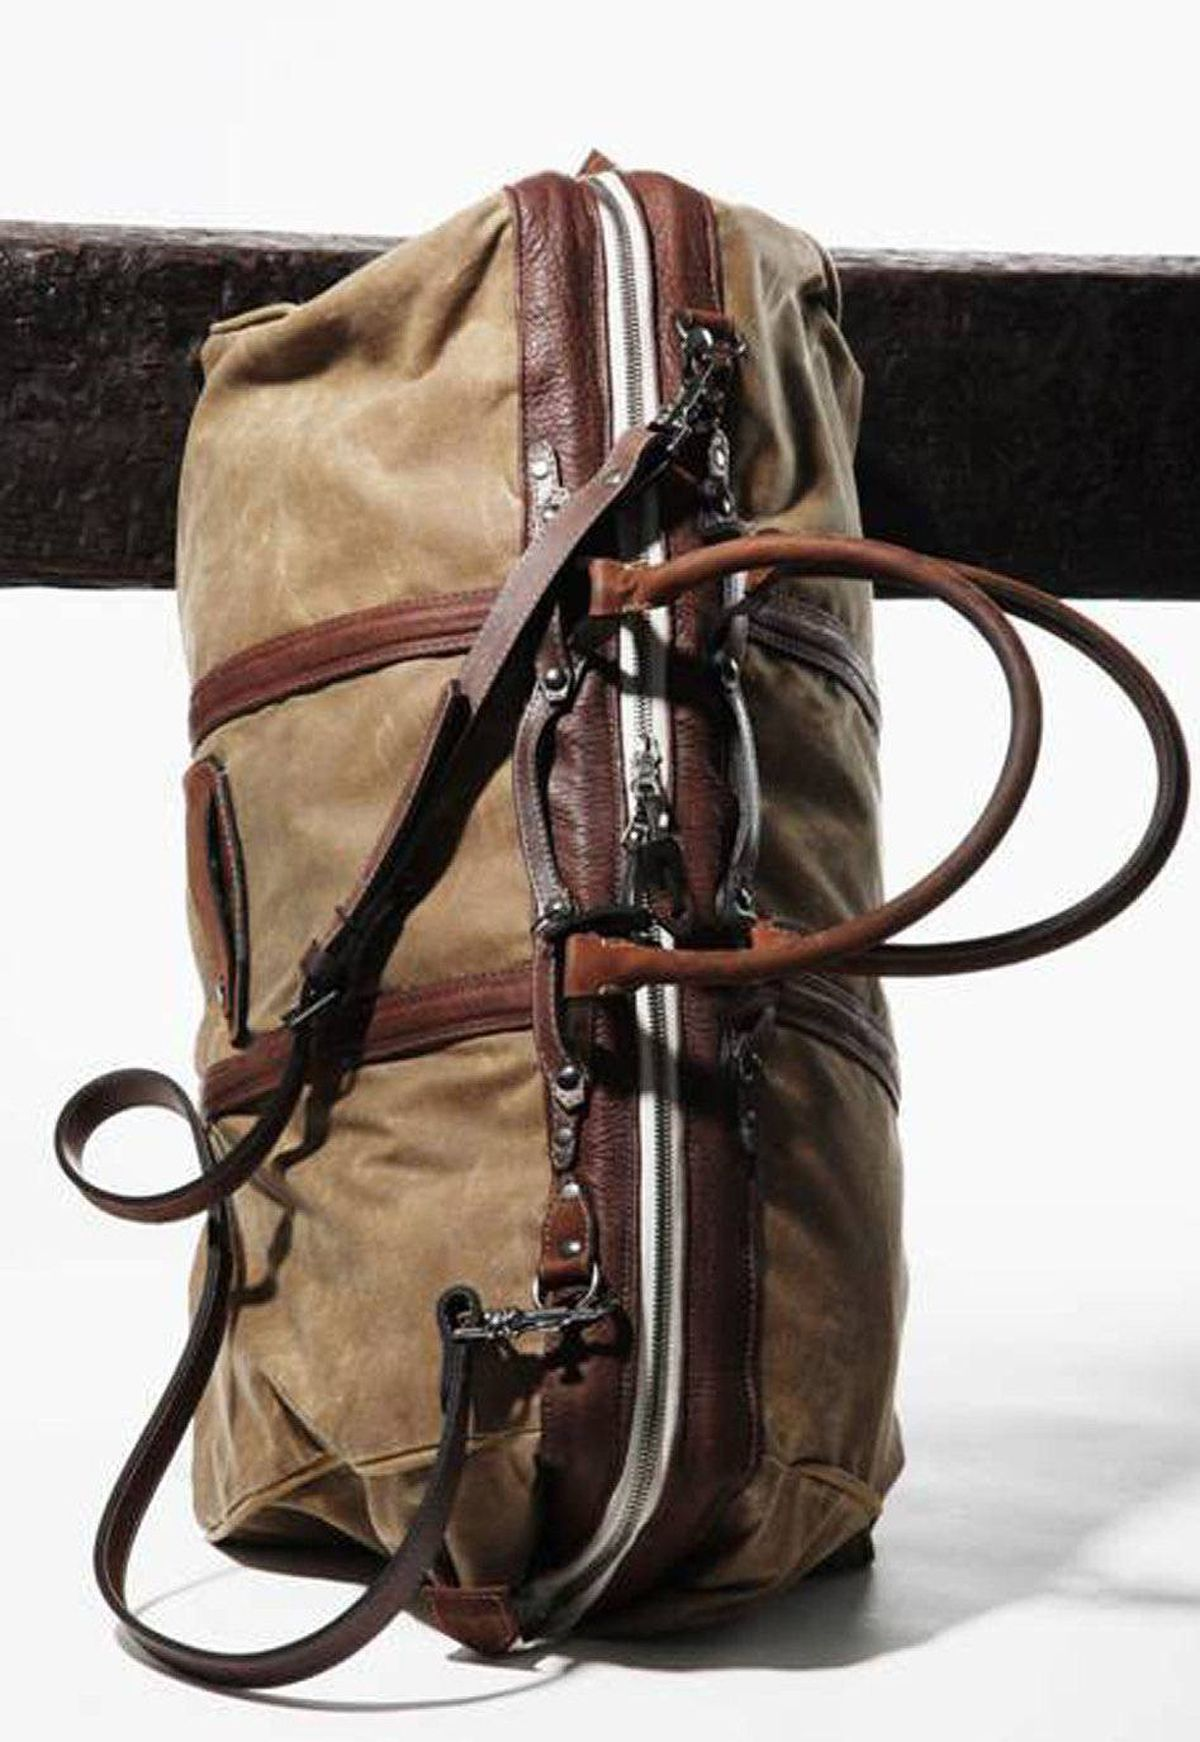 Duffle by Chow Go faux-vintage on your next weekend getaway with Krane's Haley bag. Made in Canada by men's wear designer Ken Chow, the roomy duffle has the worn-in look and no-nonsense durability of your favourite leather jacket. The design, however, is anything but old-fashioned. Chow graduated from New York's Fashion Institute of Technology and interned with Marc Jacobs - his precise tailoring technique gives the bag an edgy industrial chic look. $905; kranedesign.com